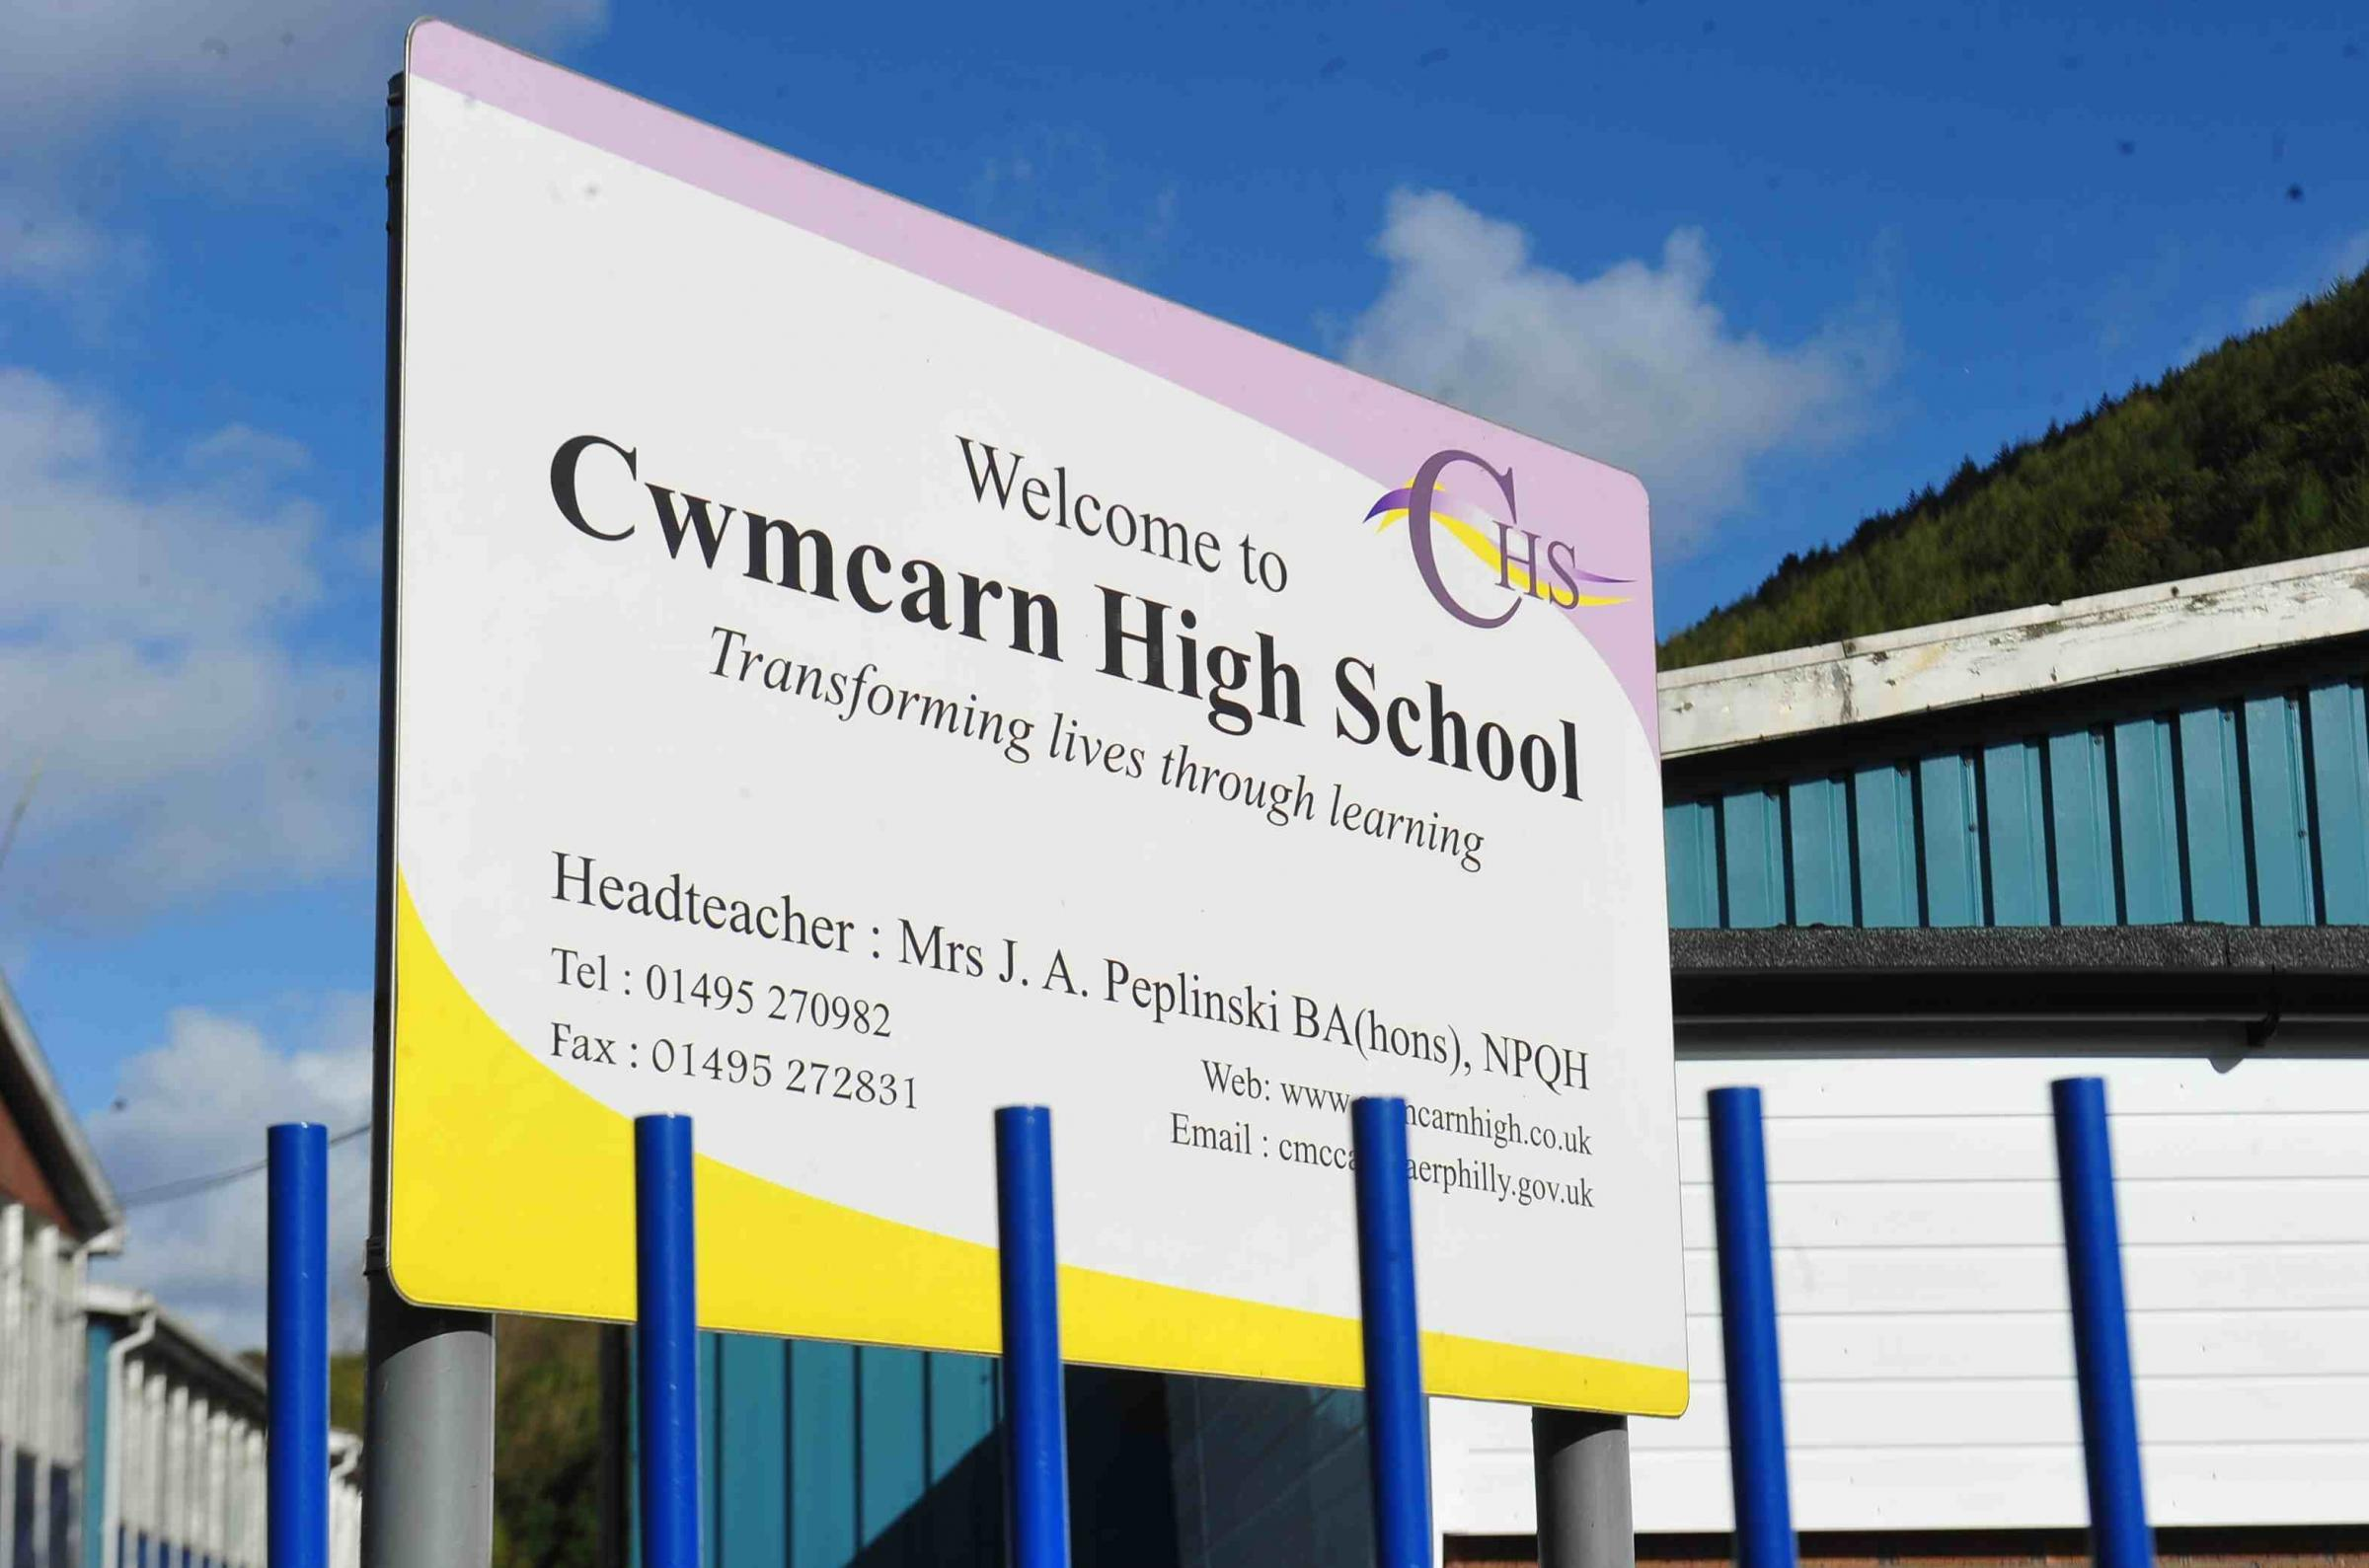 Keys to part of Cwmcarn school site handed back to staff